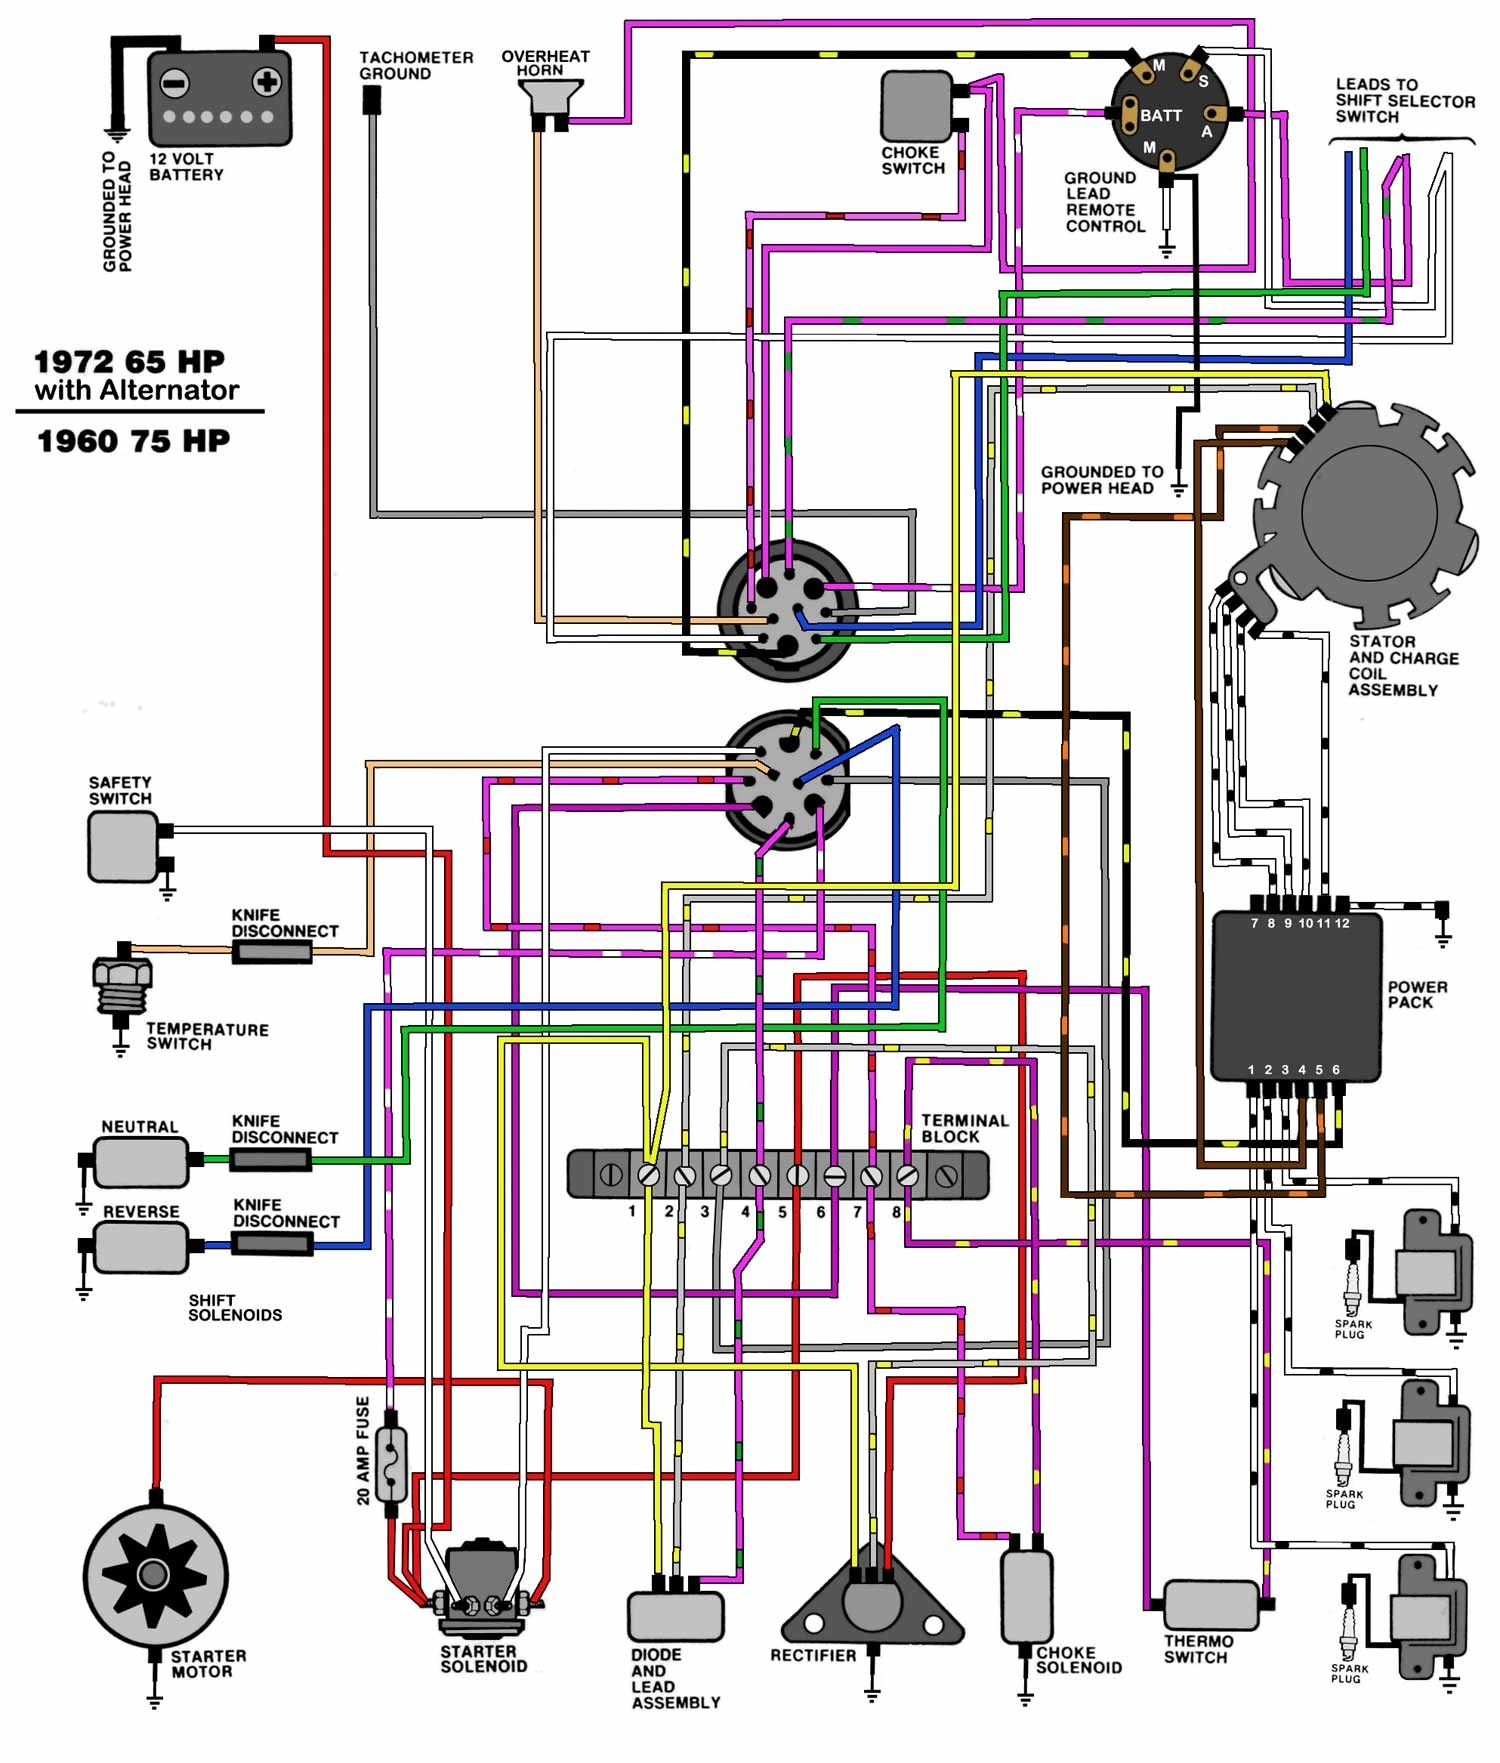 mastertech marine evinrude johnson outboard wiring diagrams for 70 hp evinrude wiring diagram?resize\=665%2C782\&ssl\=1 yamaha outboard wiring diagram wiring diagram byblank yamaha 703 remote control wiring diagram at crackthecode.co